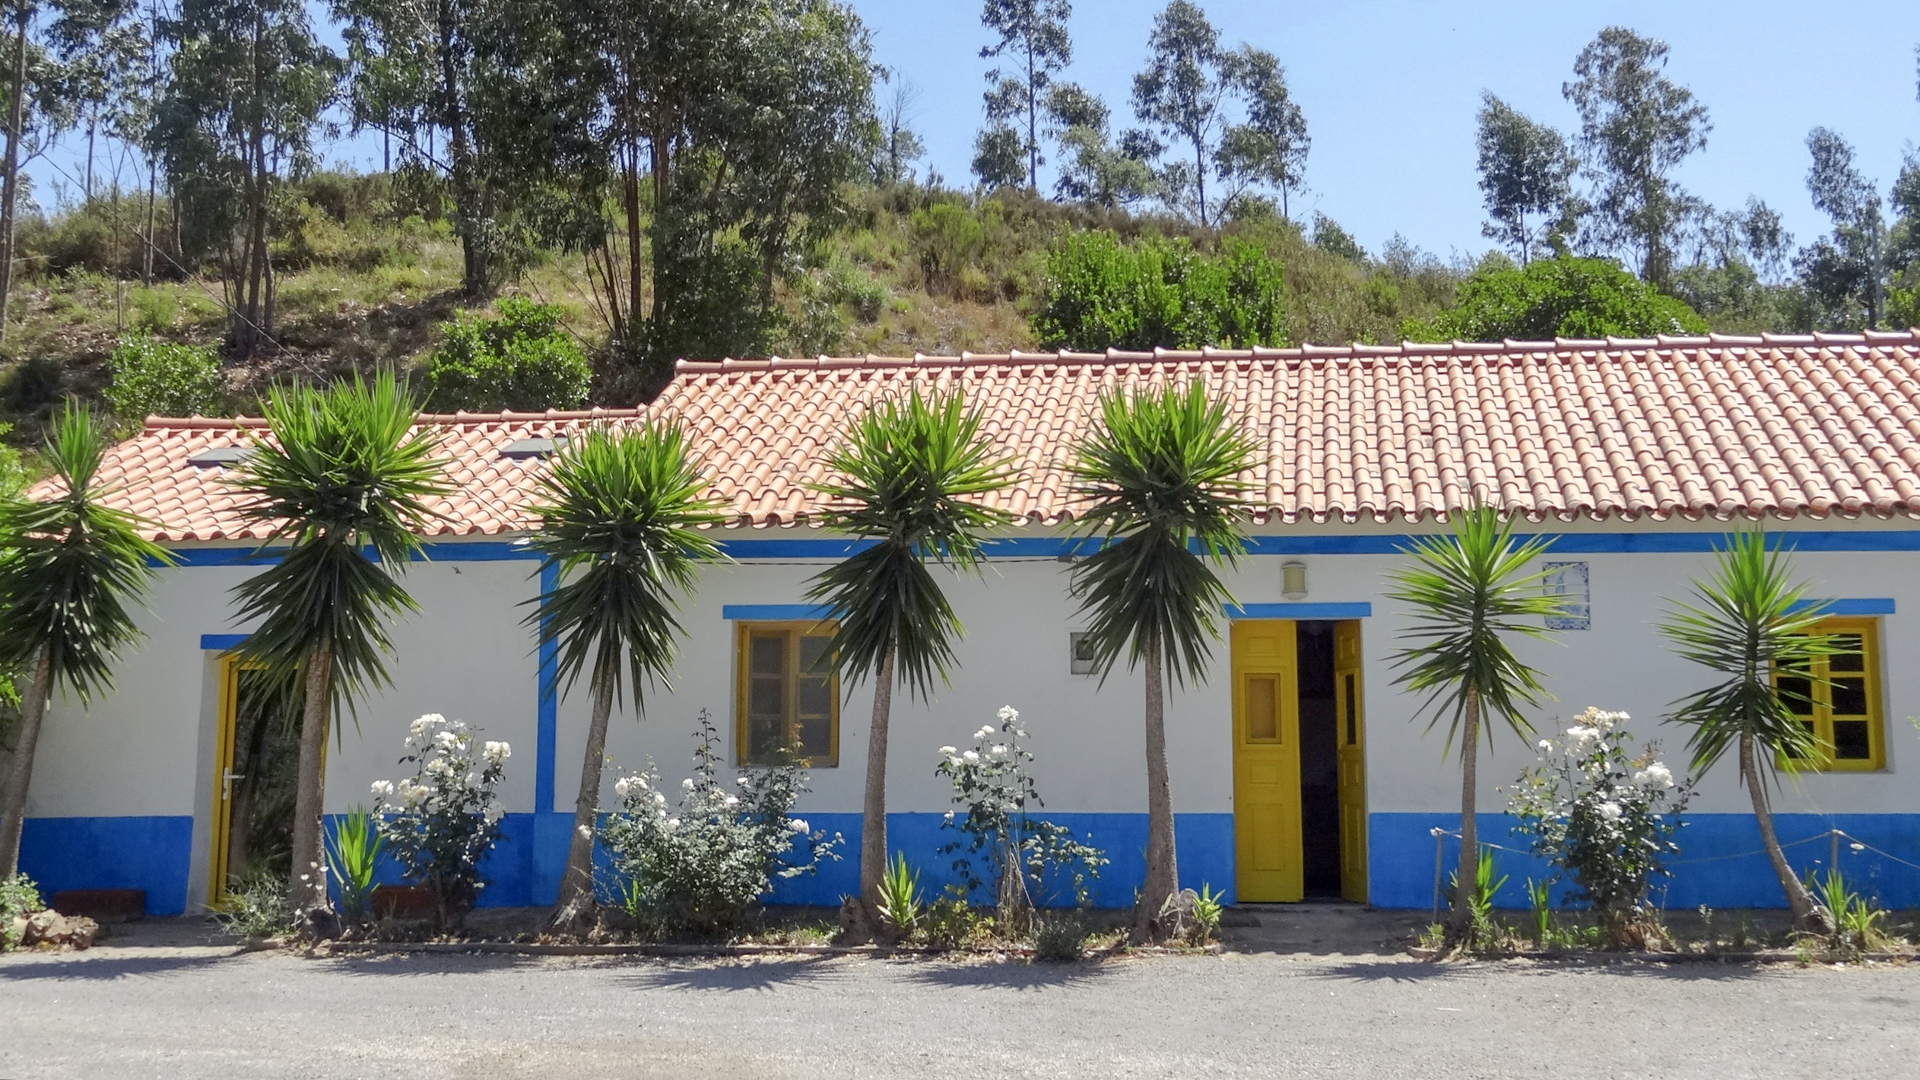 Traditional country house with lots of land near Marmelete, Monchique, West Algarve | S1957 A traditional three bedroom, renovated country house with lots of land, located near Marmelete, Monchique. The property is situated in an idyllic location with panoramic views and surrounded by nature.